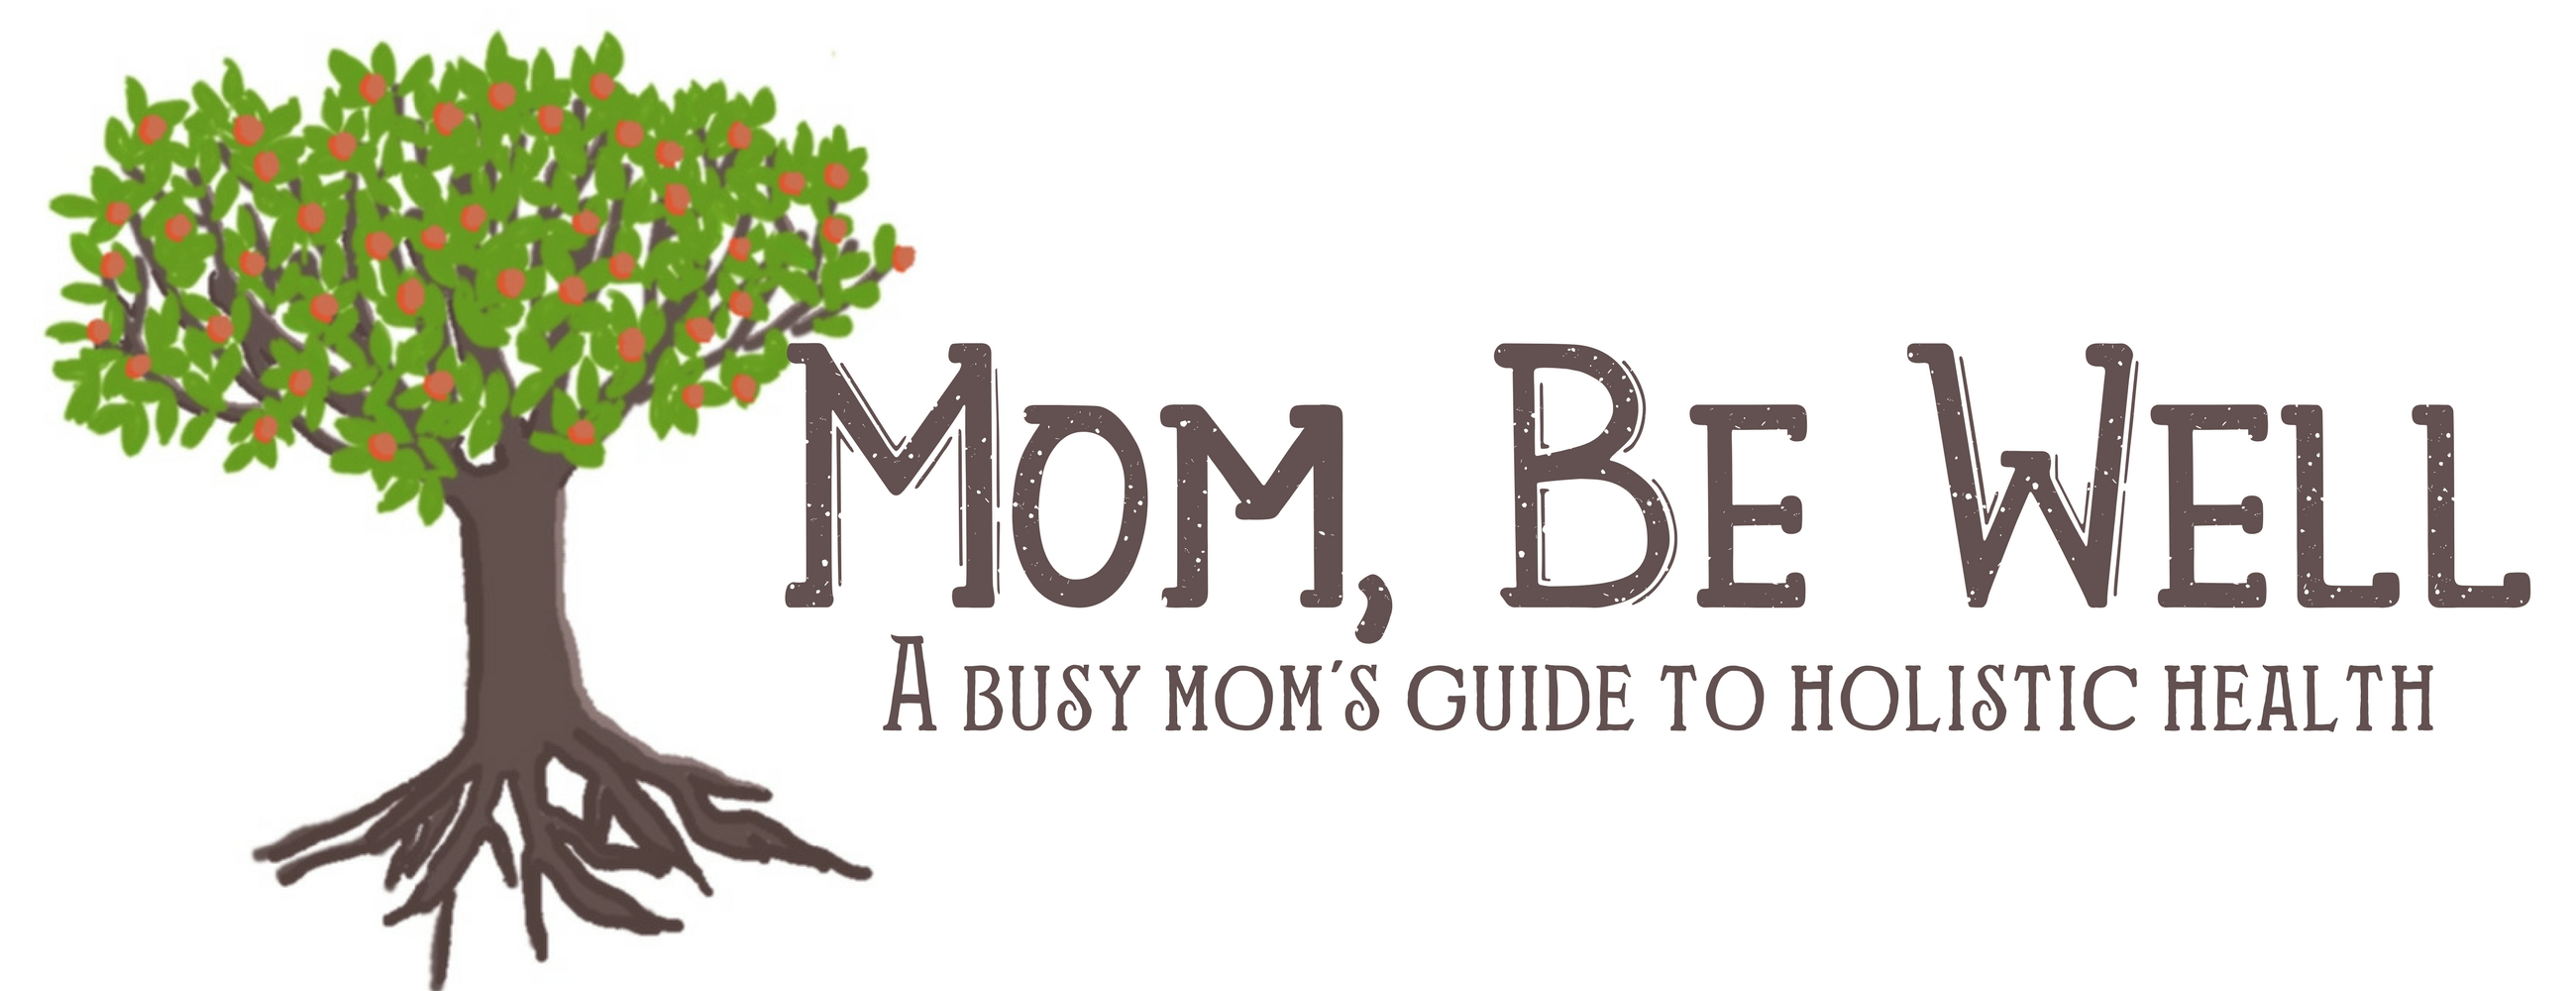 Mom, Be Well